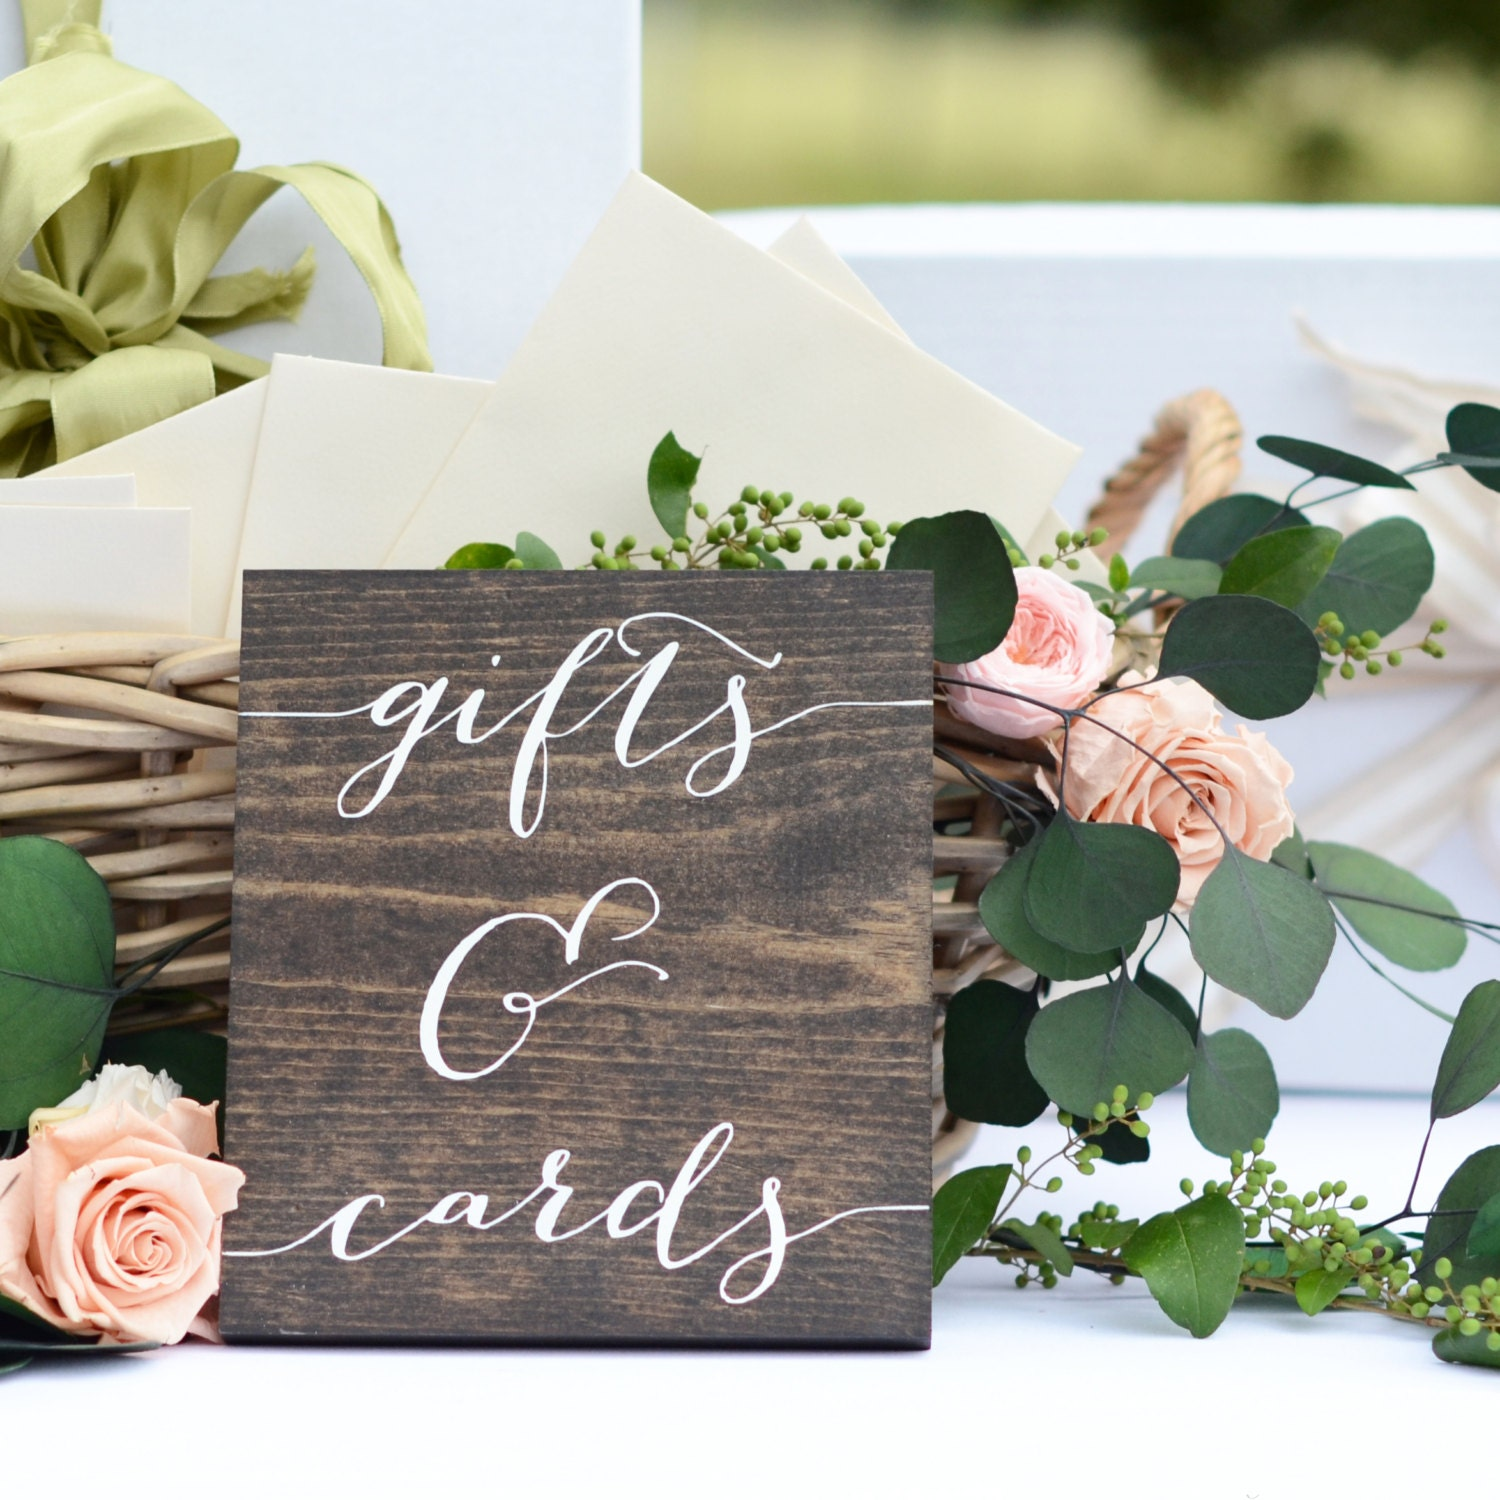 Pictures Of Wedding Gift Tables : Gifts and Cards Sign Wedding Gift Table Sign Gifts Sign